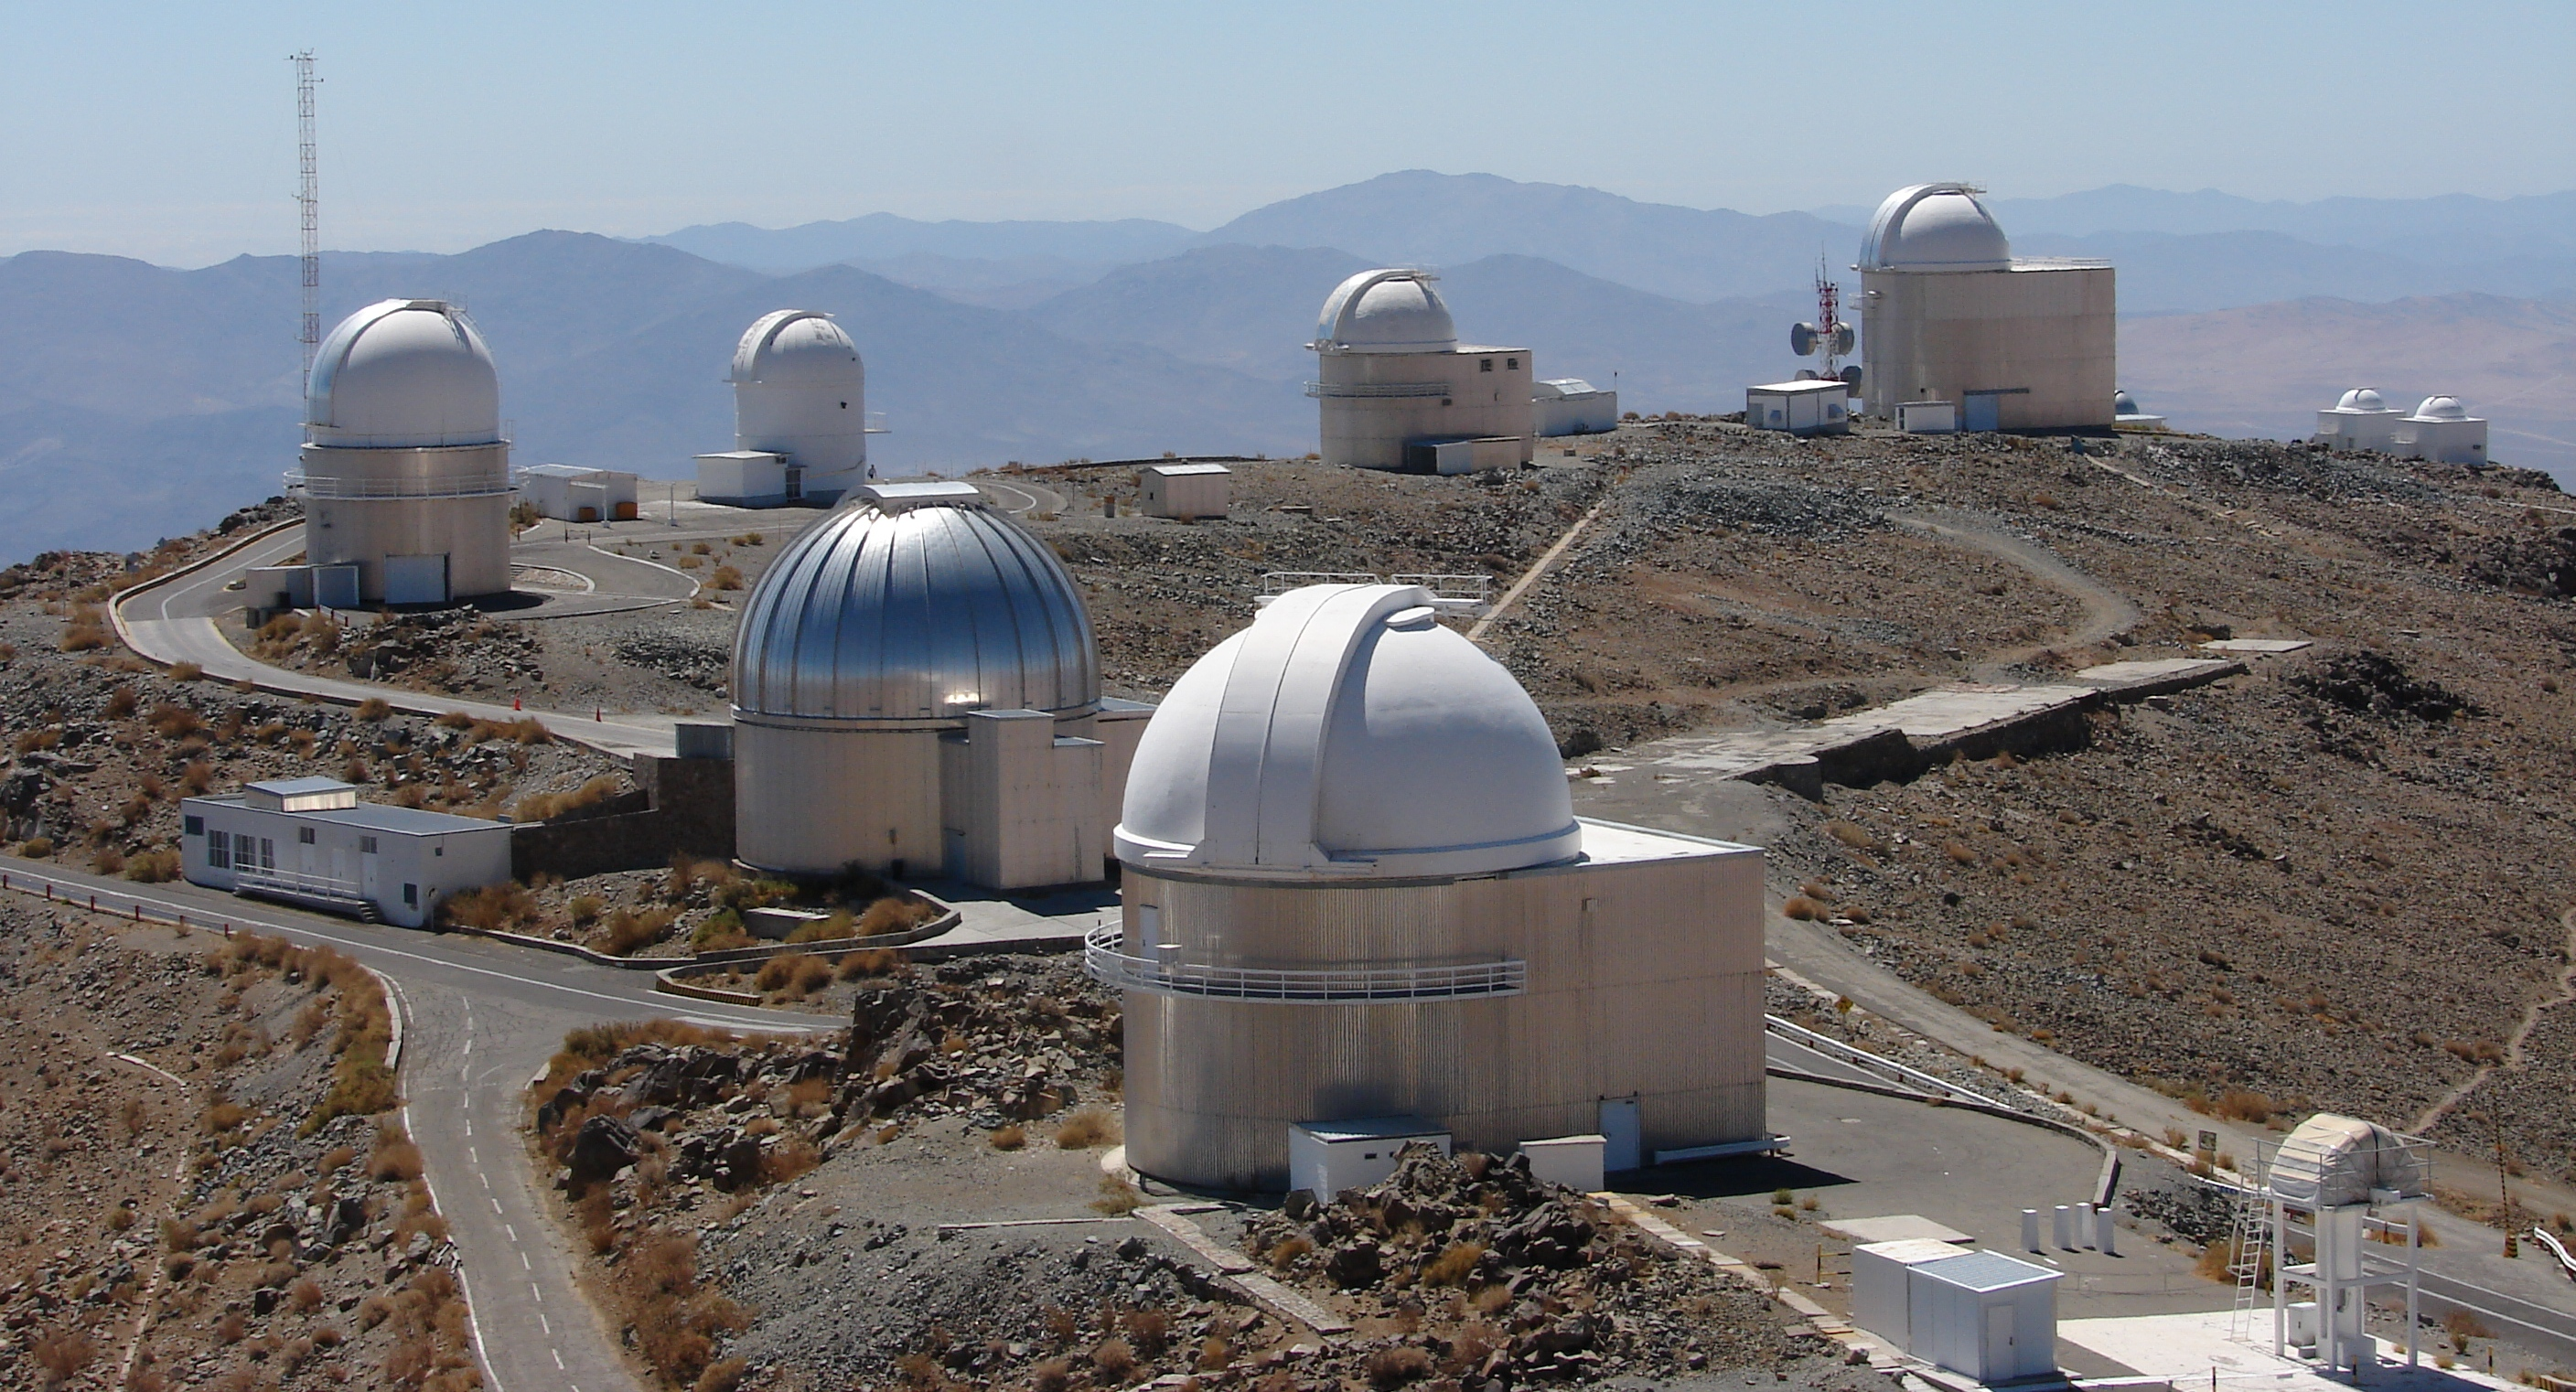 astronomy observatory with telescope - photo #14